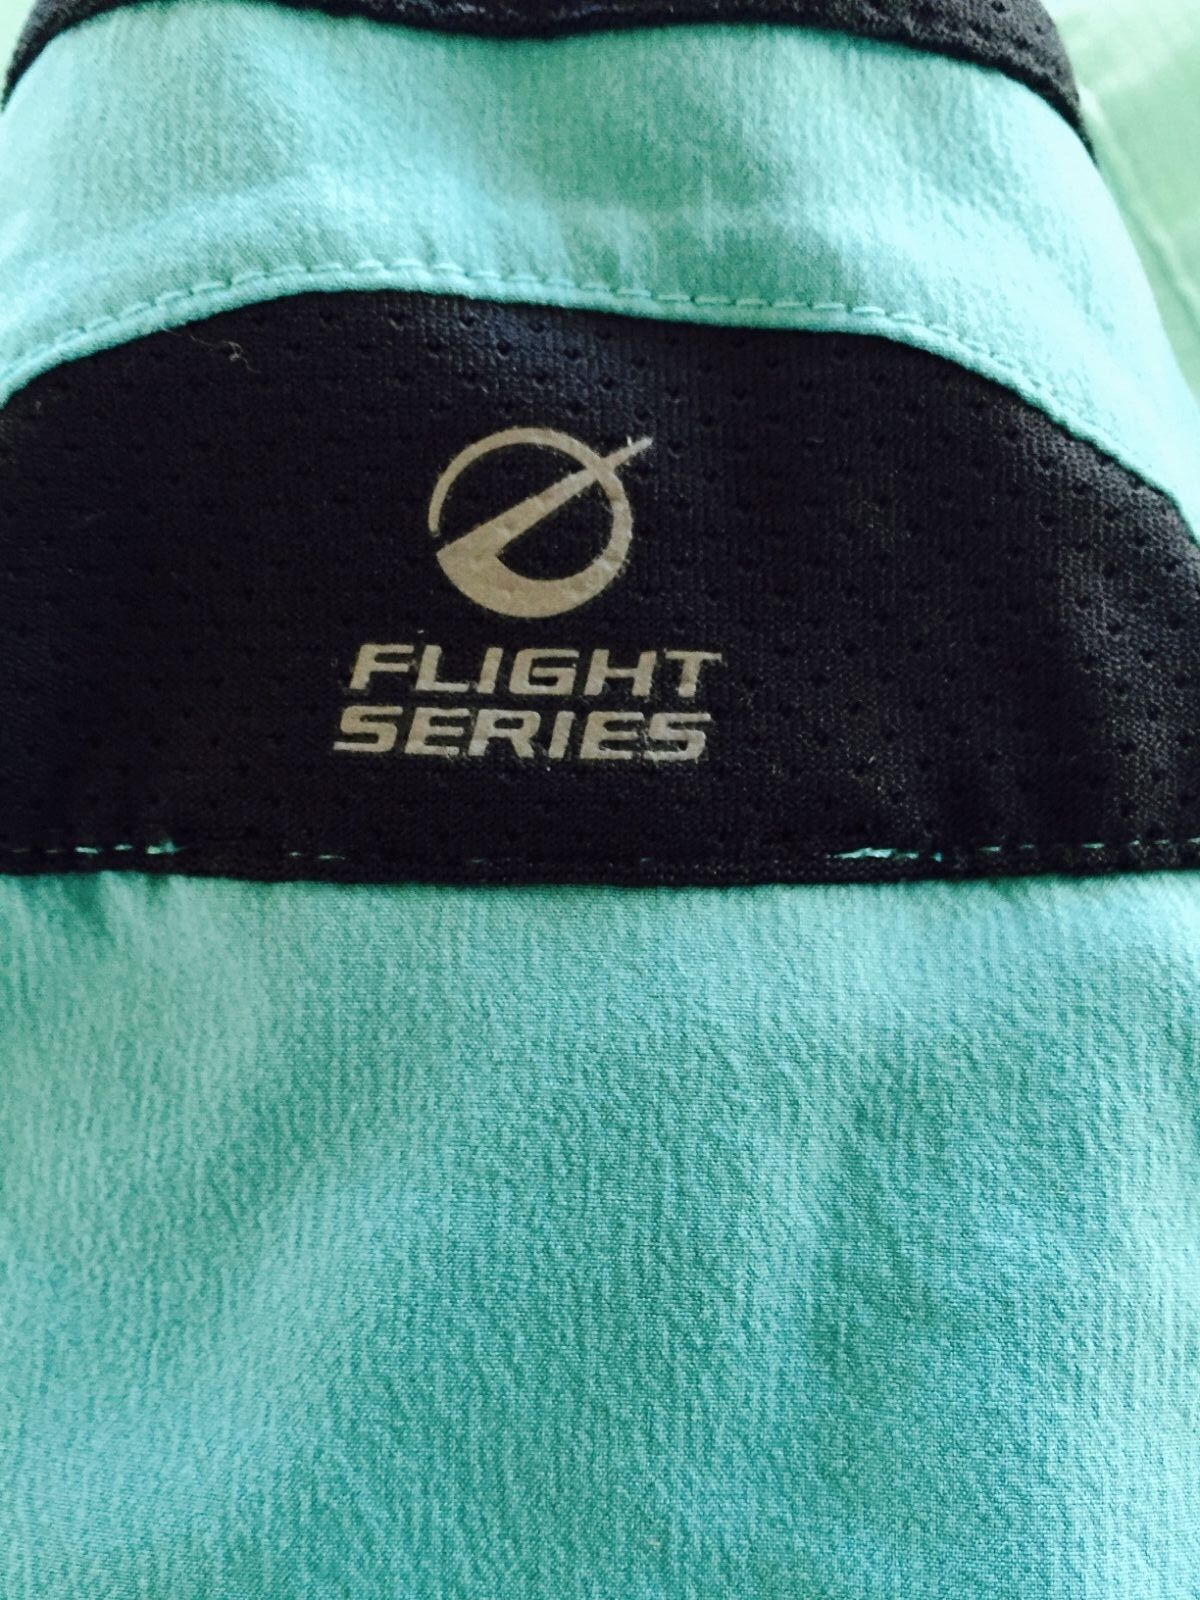 Women's Women's Women's The North Face Apex Flight Series Full Zip Running Windbreaker Sz Medium 8036b5